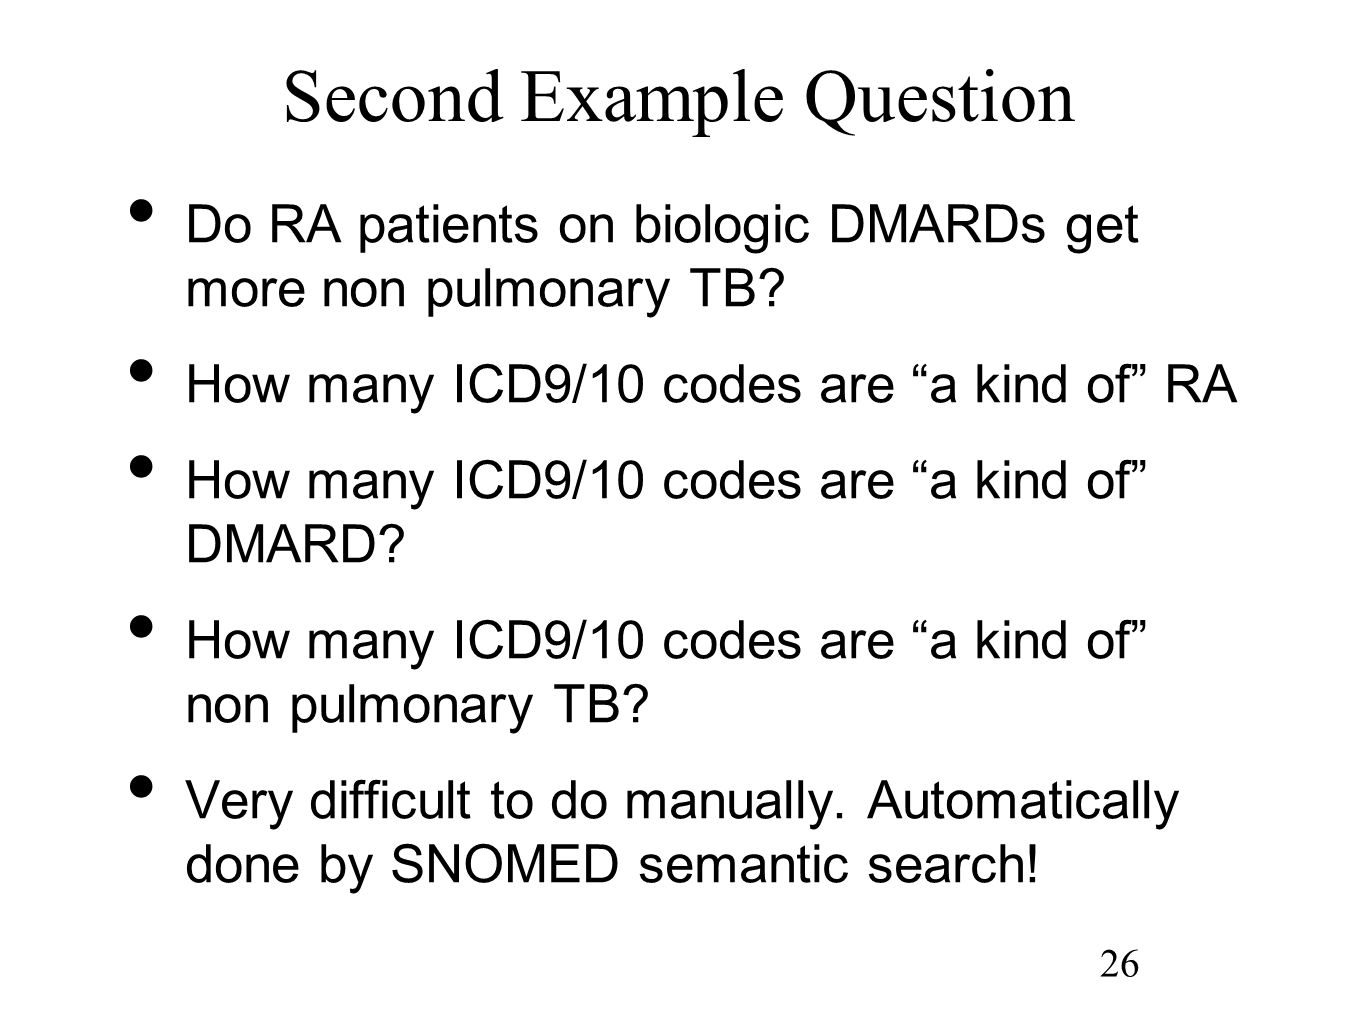 26 Second Example Question Do RA patients on biologic DMARDs get more non pulmonary TB? How many ICD9/10 codes are a kind of RA How many ICD9/10 codes